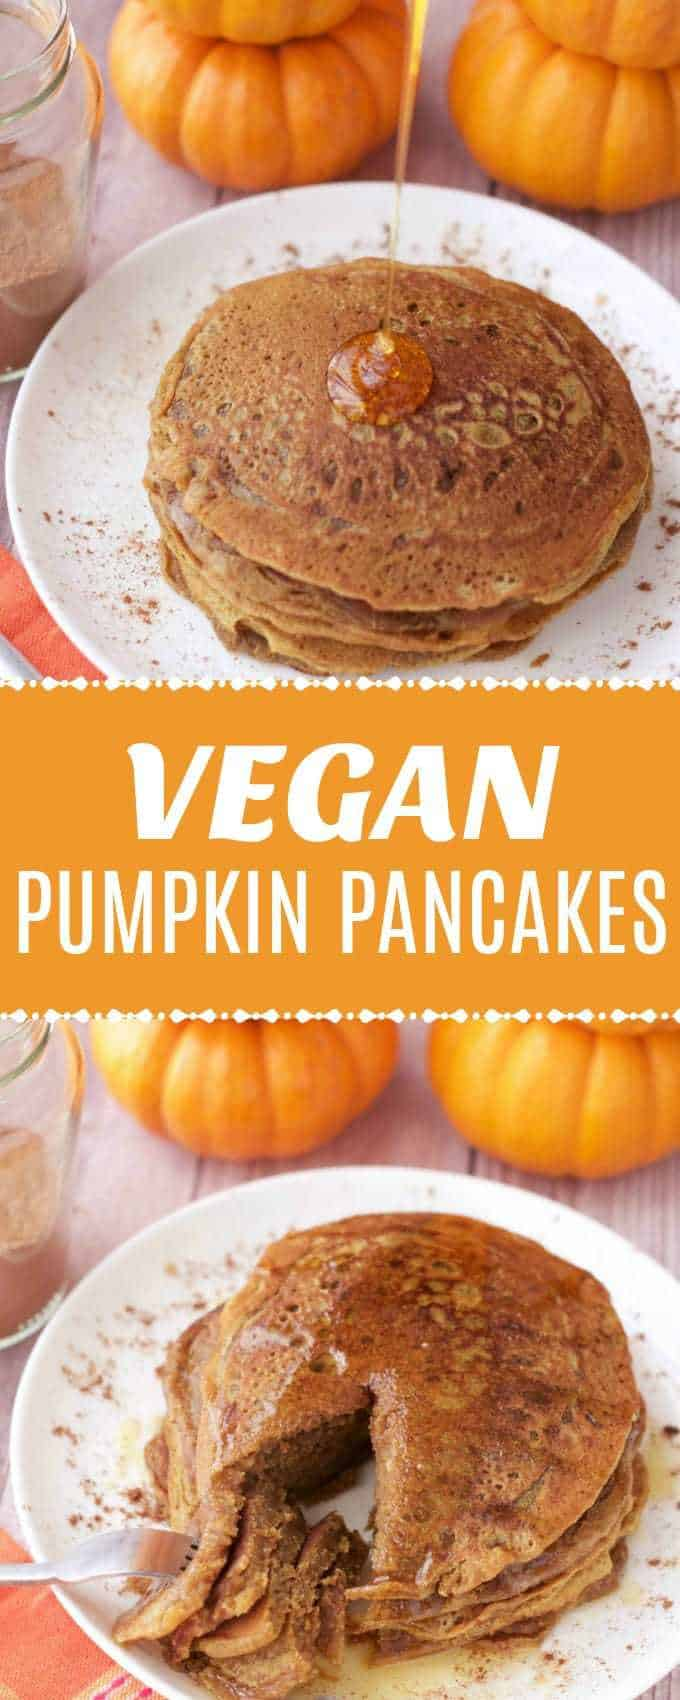 Deliciously spiced vegan pumpkin pancakes! Richly satisfying and ideal for breakfast served with vegan butter, syrup and sprinkles of pumpkin pie spice! | lovingitvegan.com